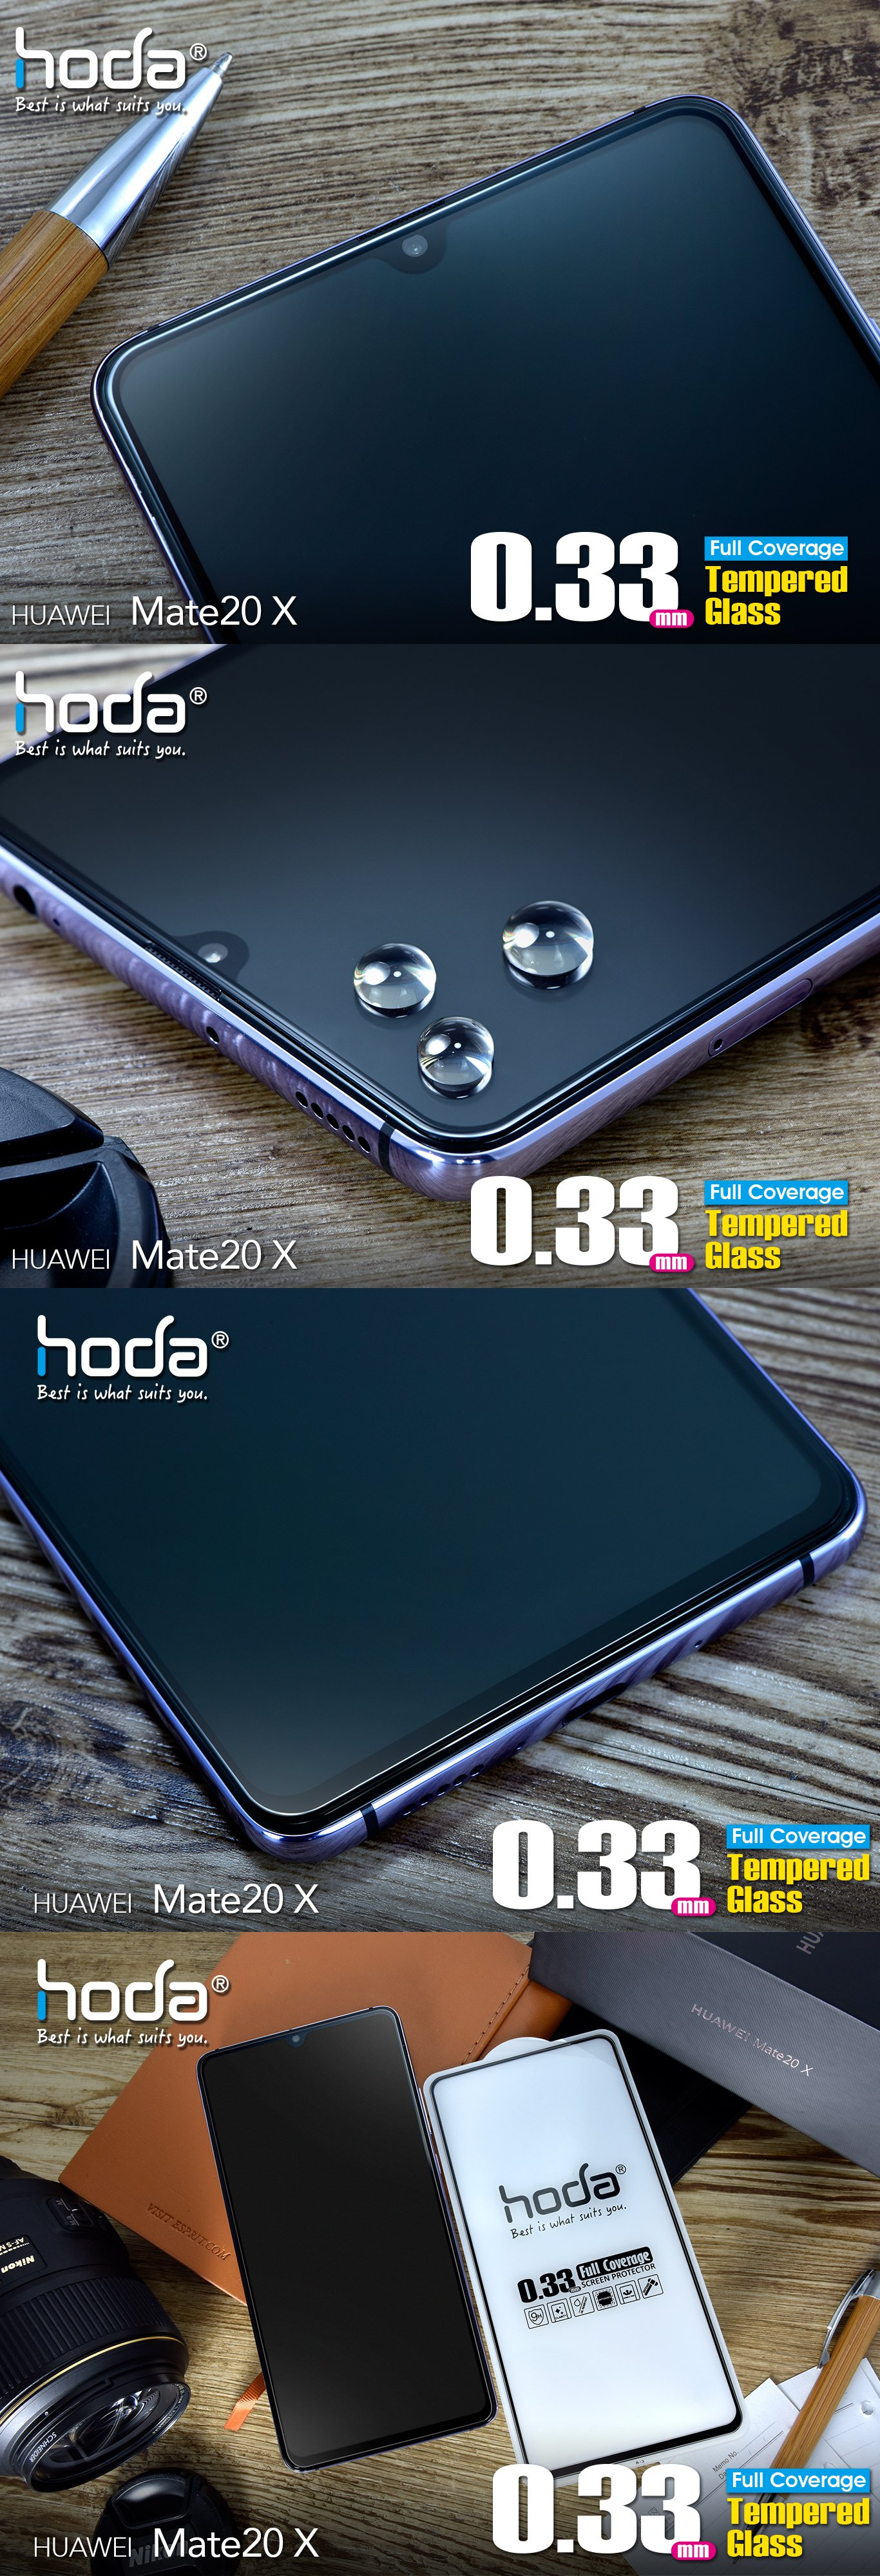 hoda-full-coverage-2.5D-0.33mm-huawei-mate-20-x-clear-malaysia-authorised-retailer-overview